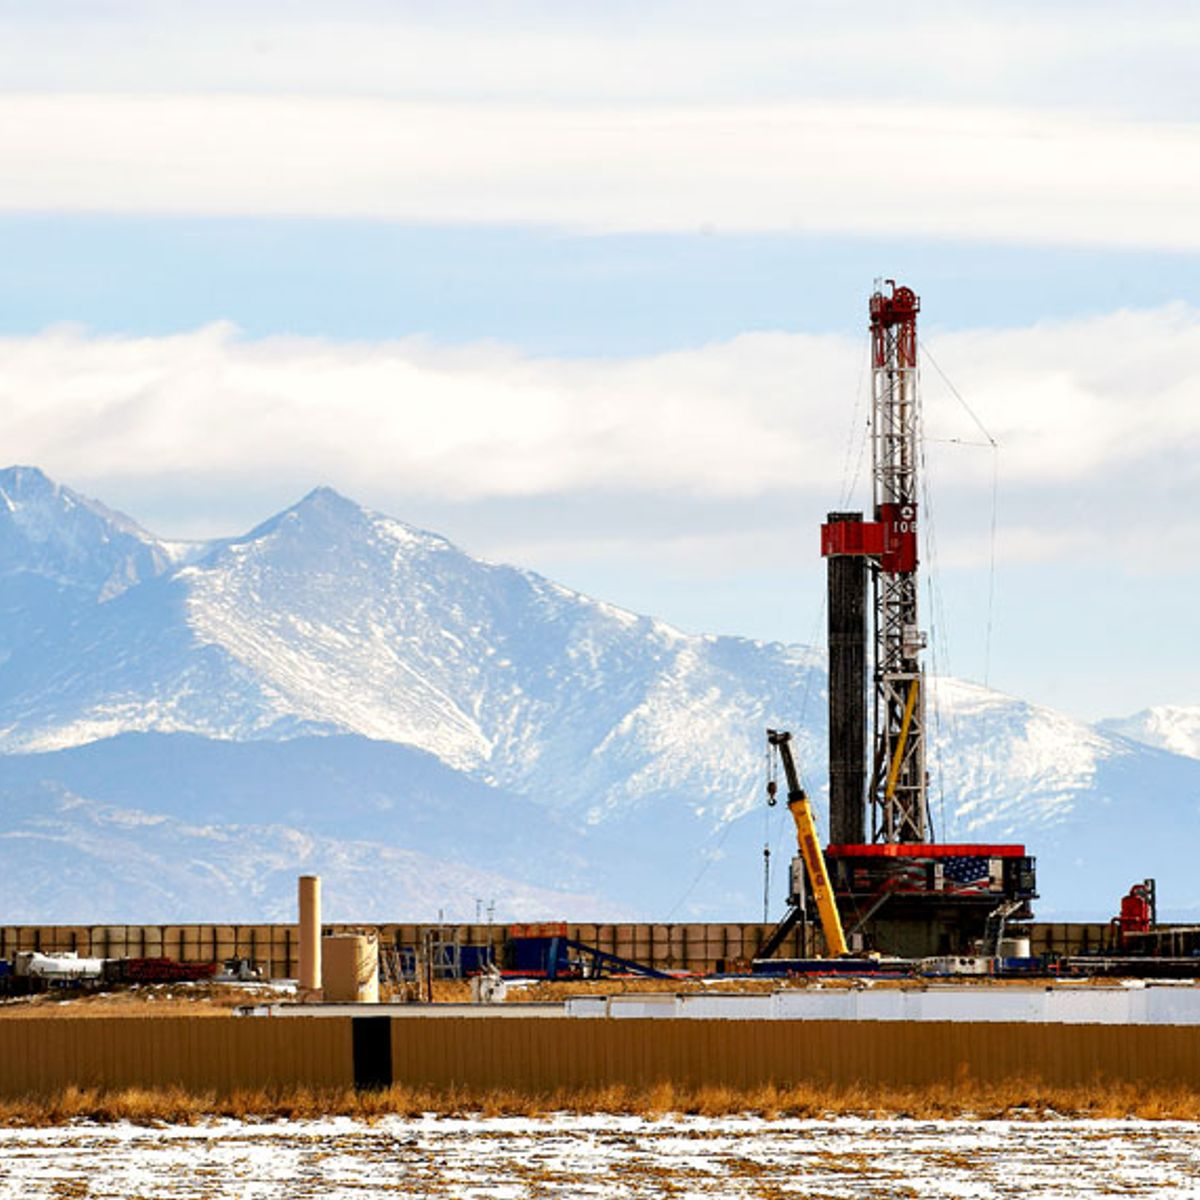 Rust Belt residents aren't as enthusiastic about fracking as the media depicts